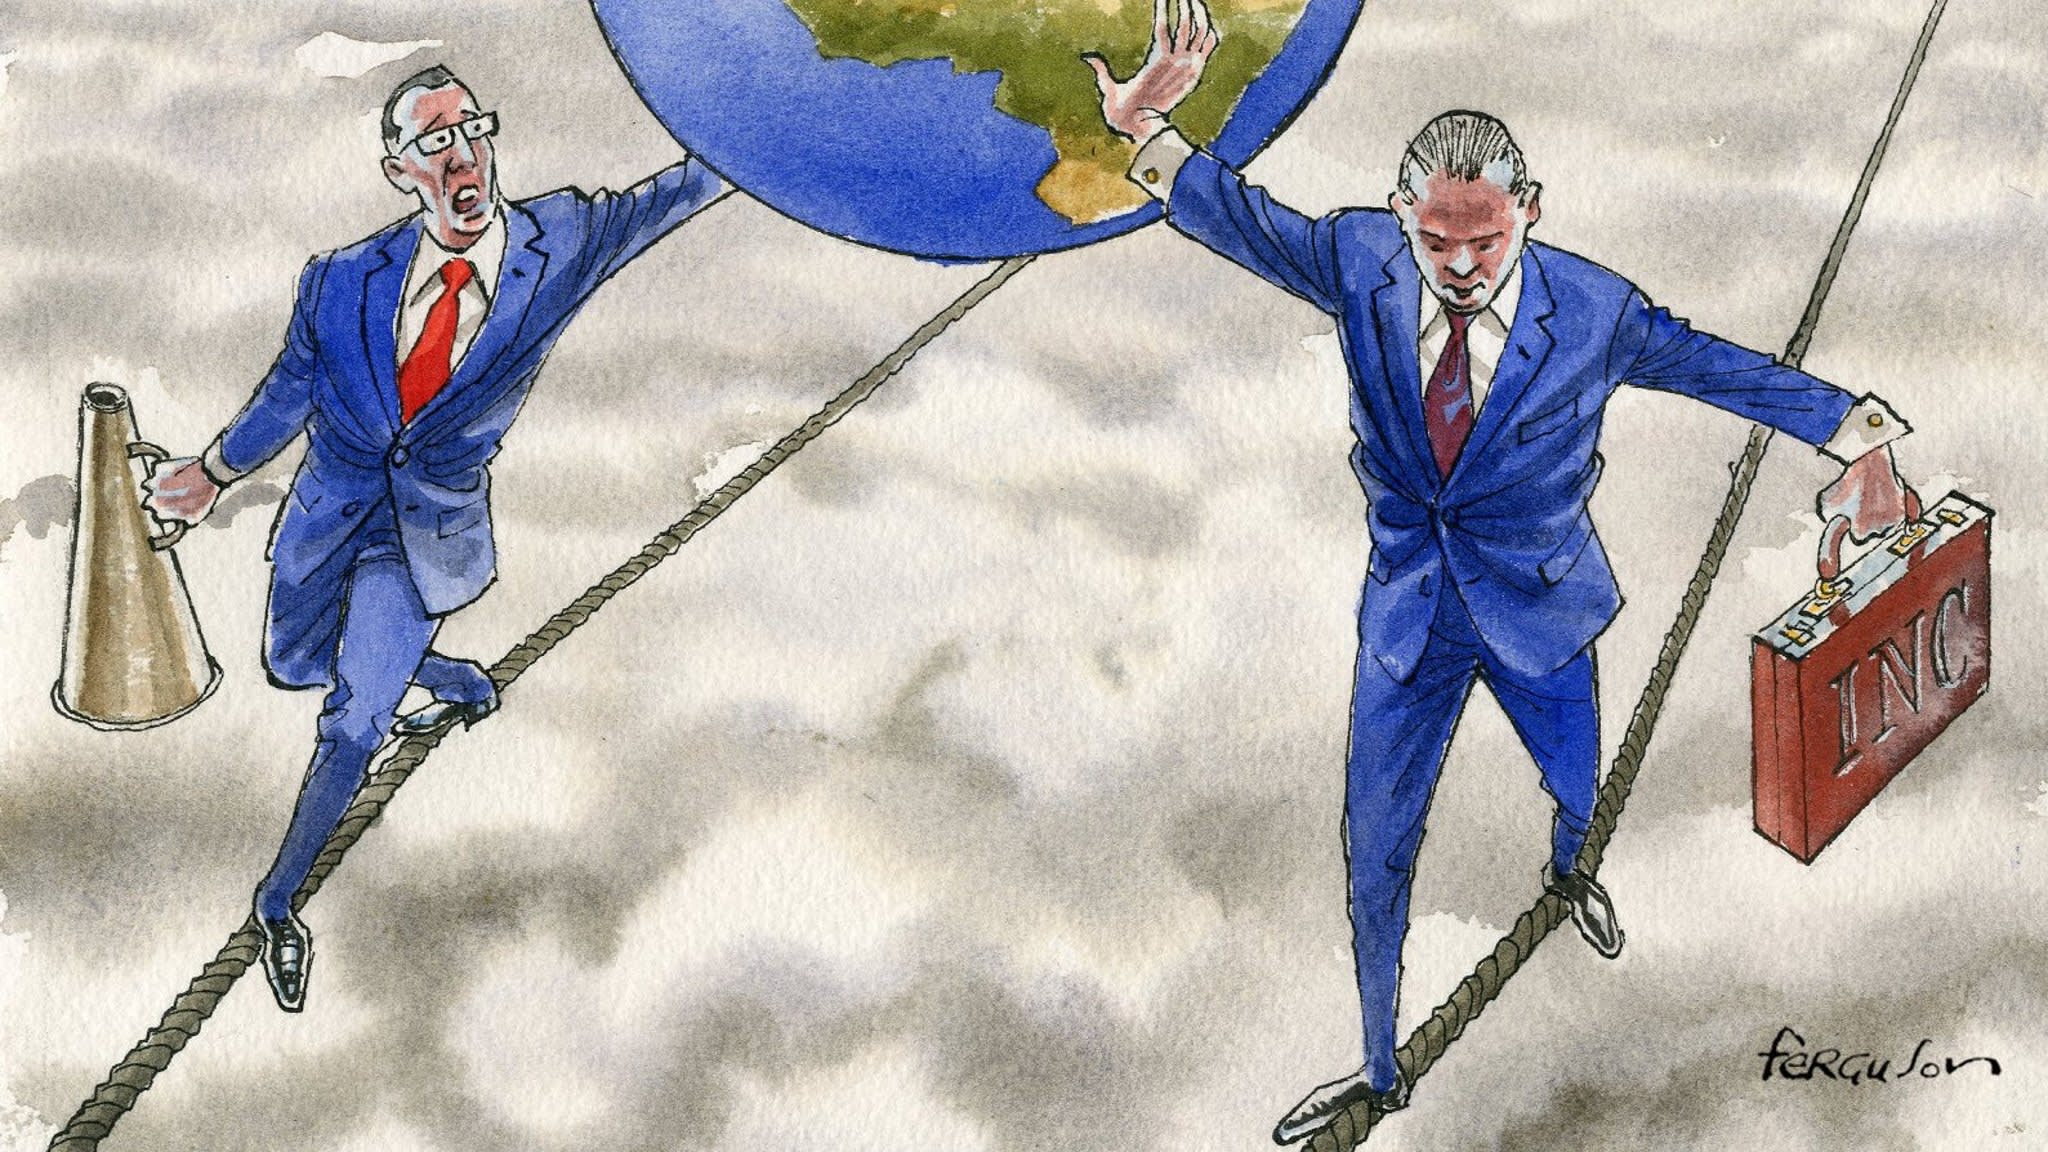 We are living in an age of unprecedented risks | Financial Times